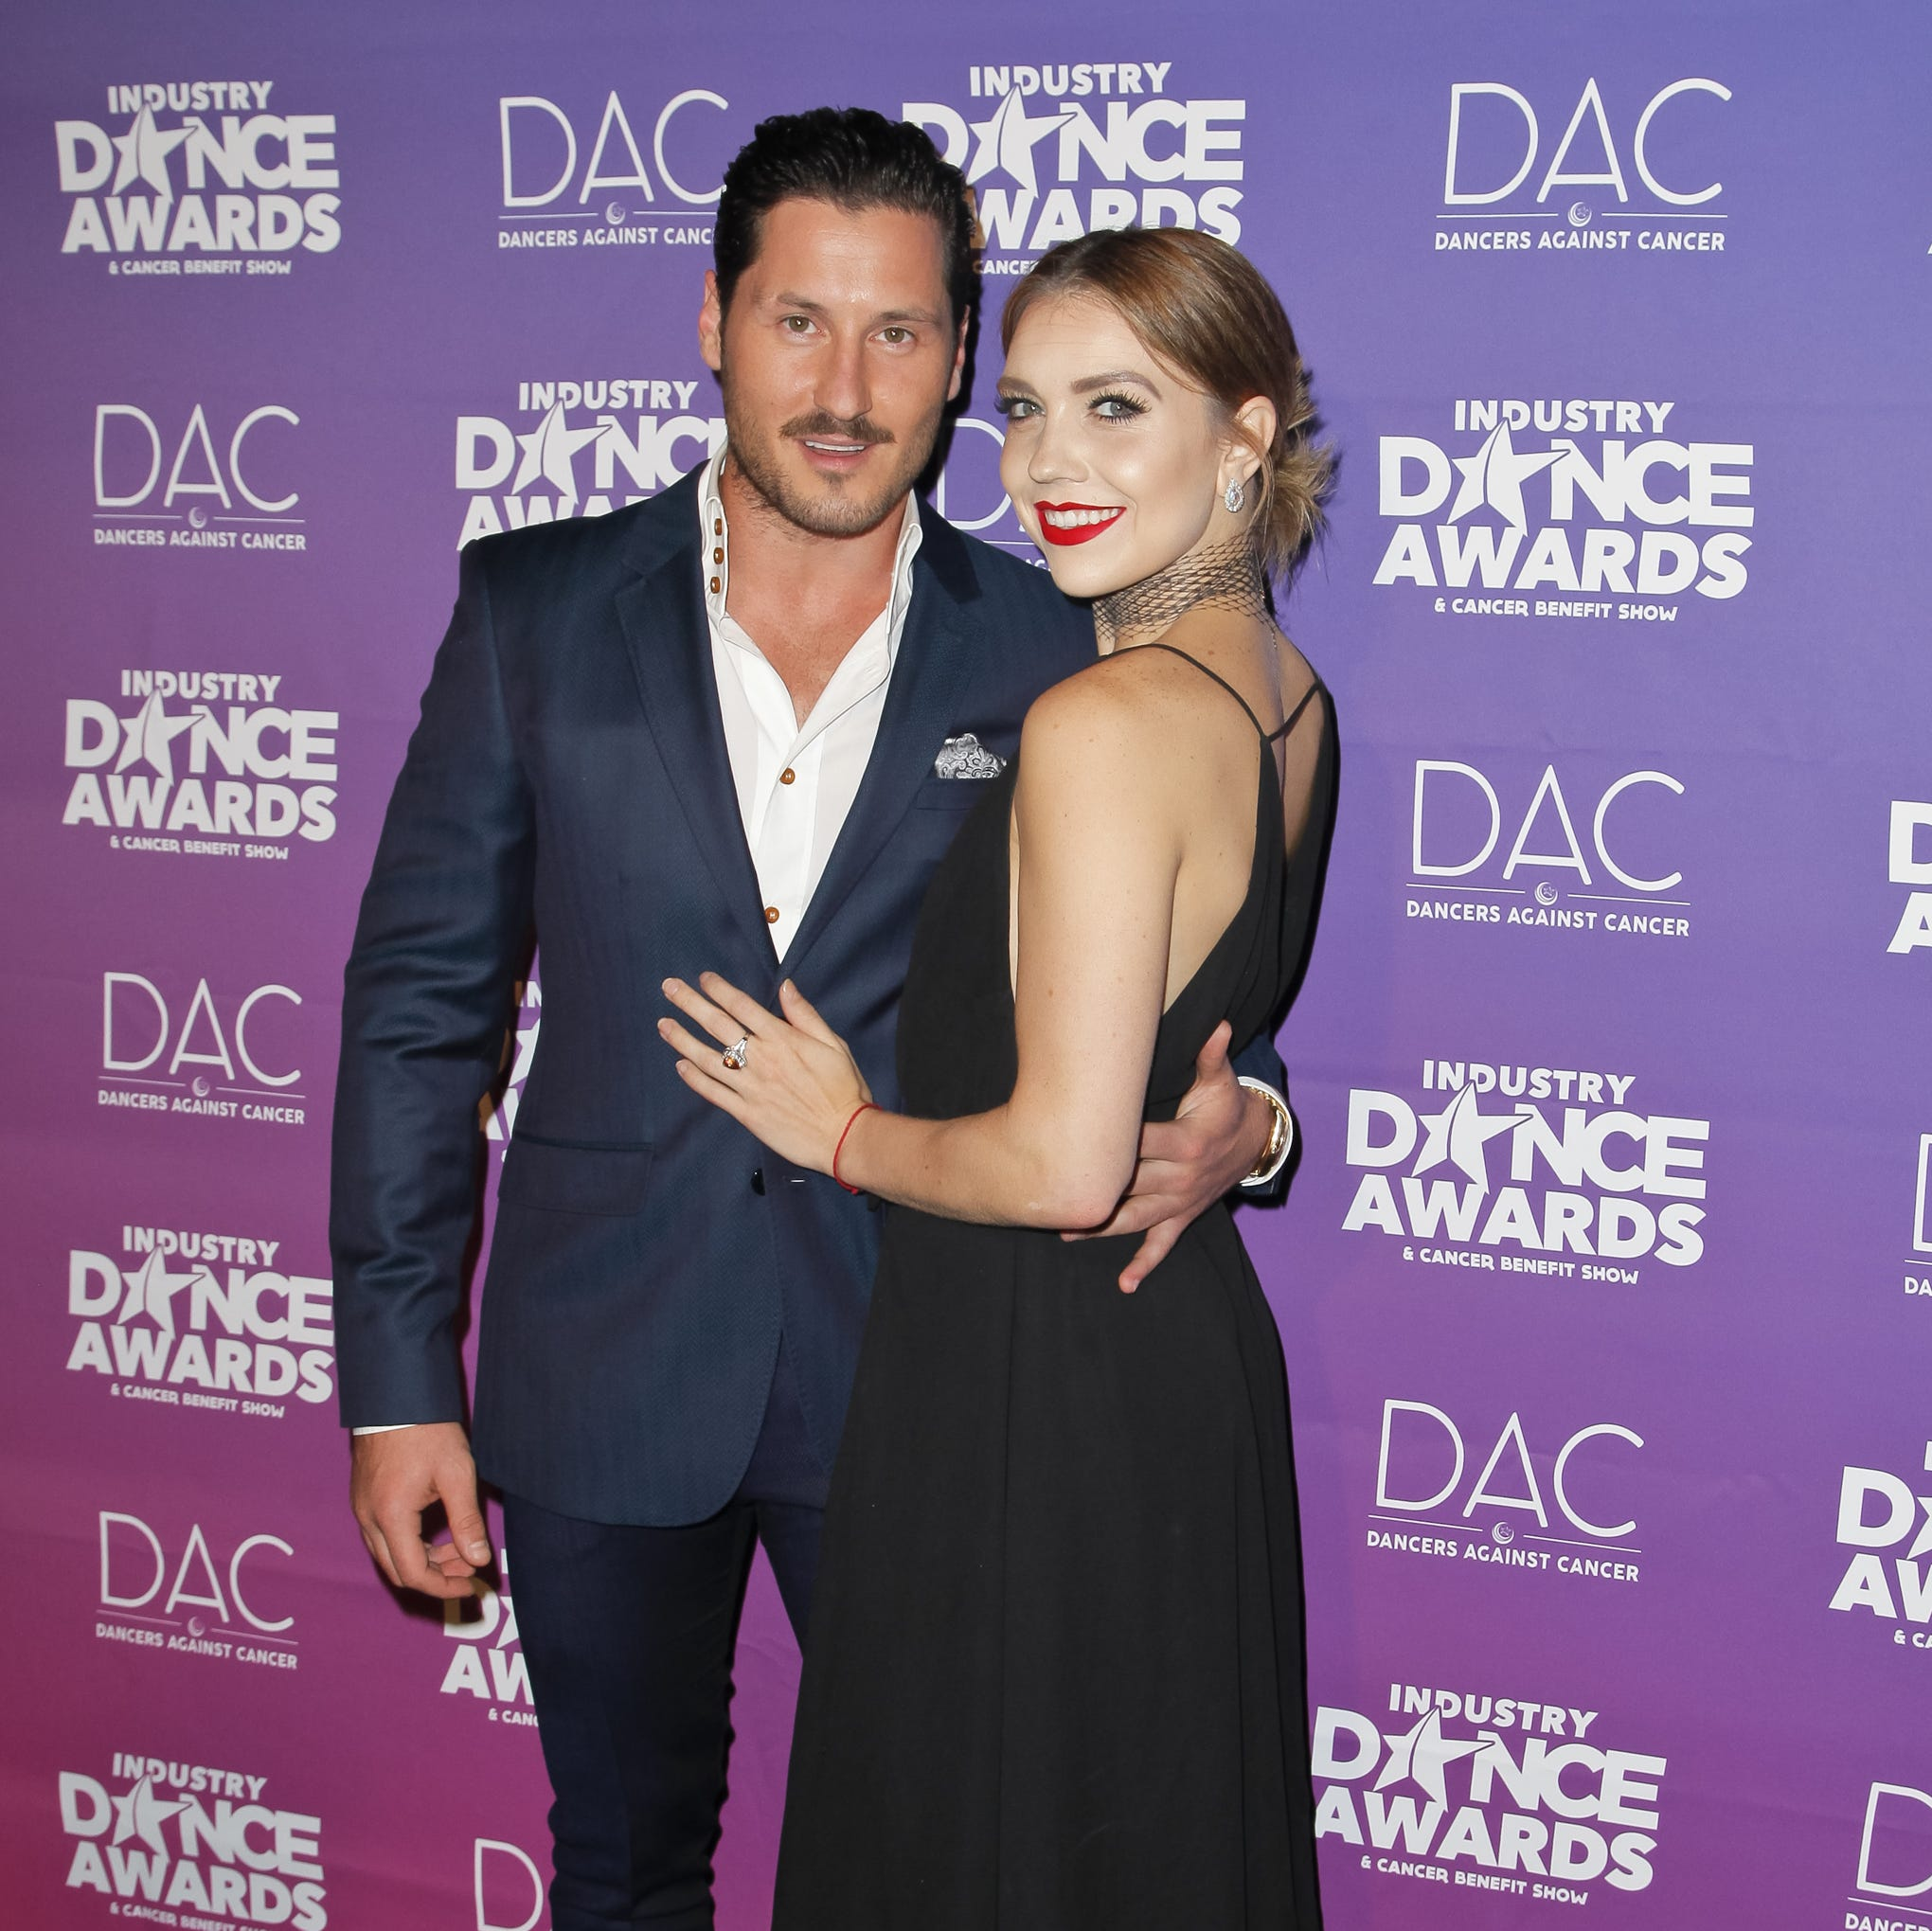 Val Chmerkovskiy and Jenna Johnson attend the 2017 Industry Dance Awards and Cancer Benefit Show on August 16, 2017 in Hollywood, California.